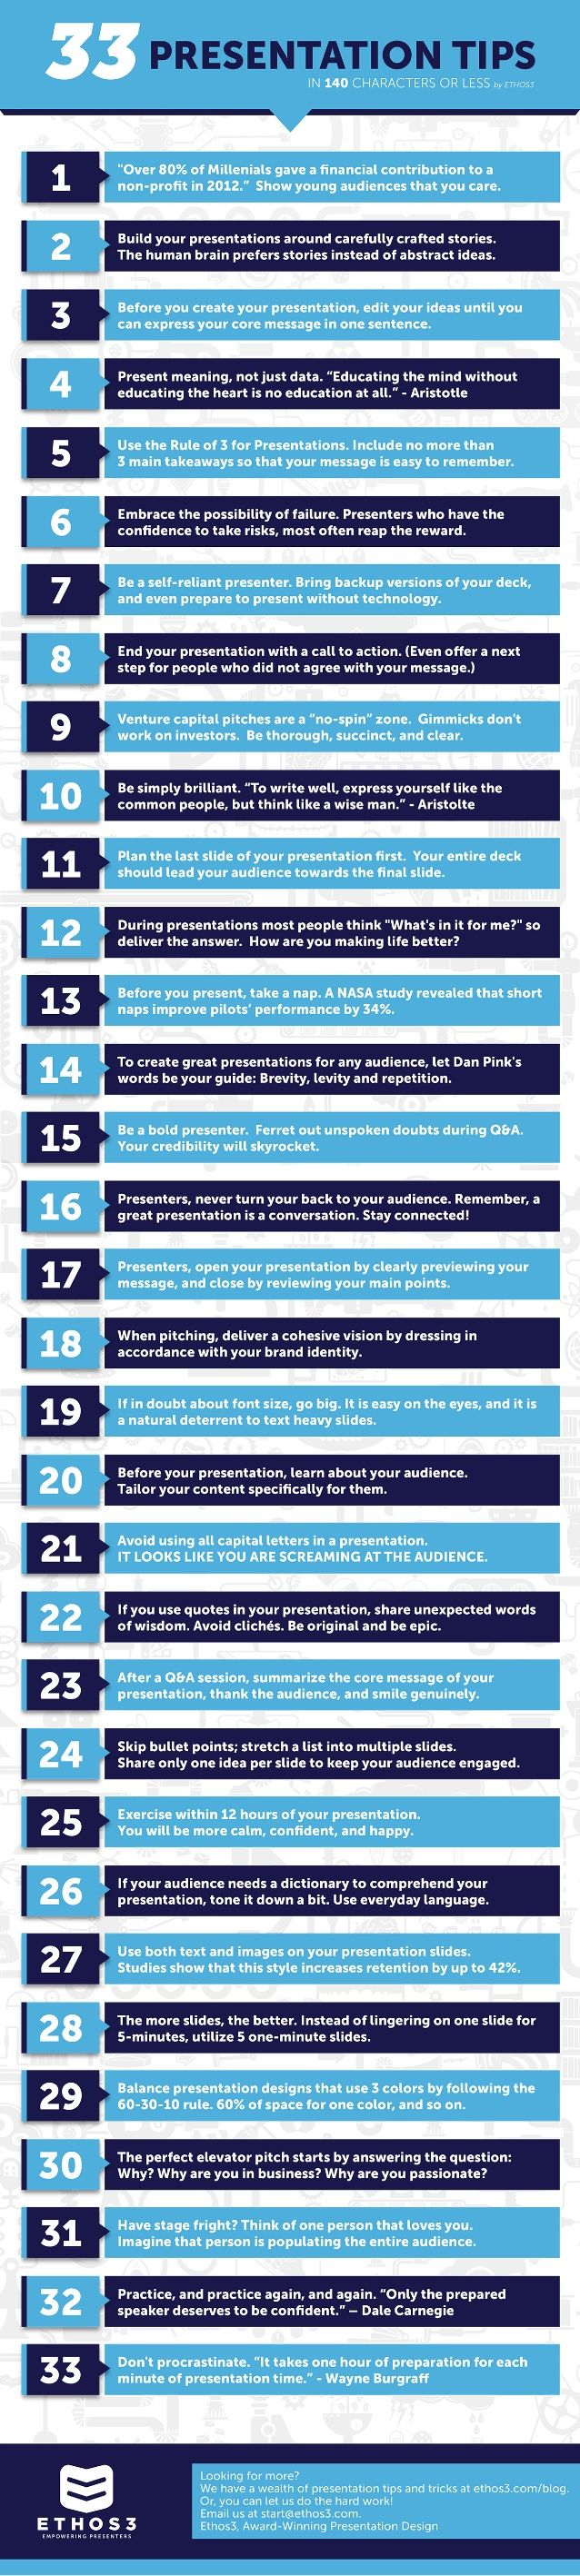 33 Presentation Tips in 140 characters or less by Ethos3 | Presentation Design and Training via slideshare